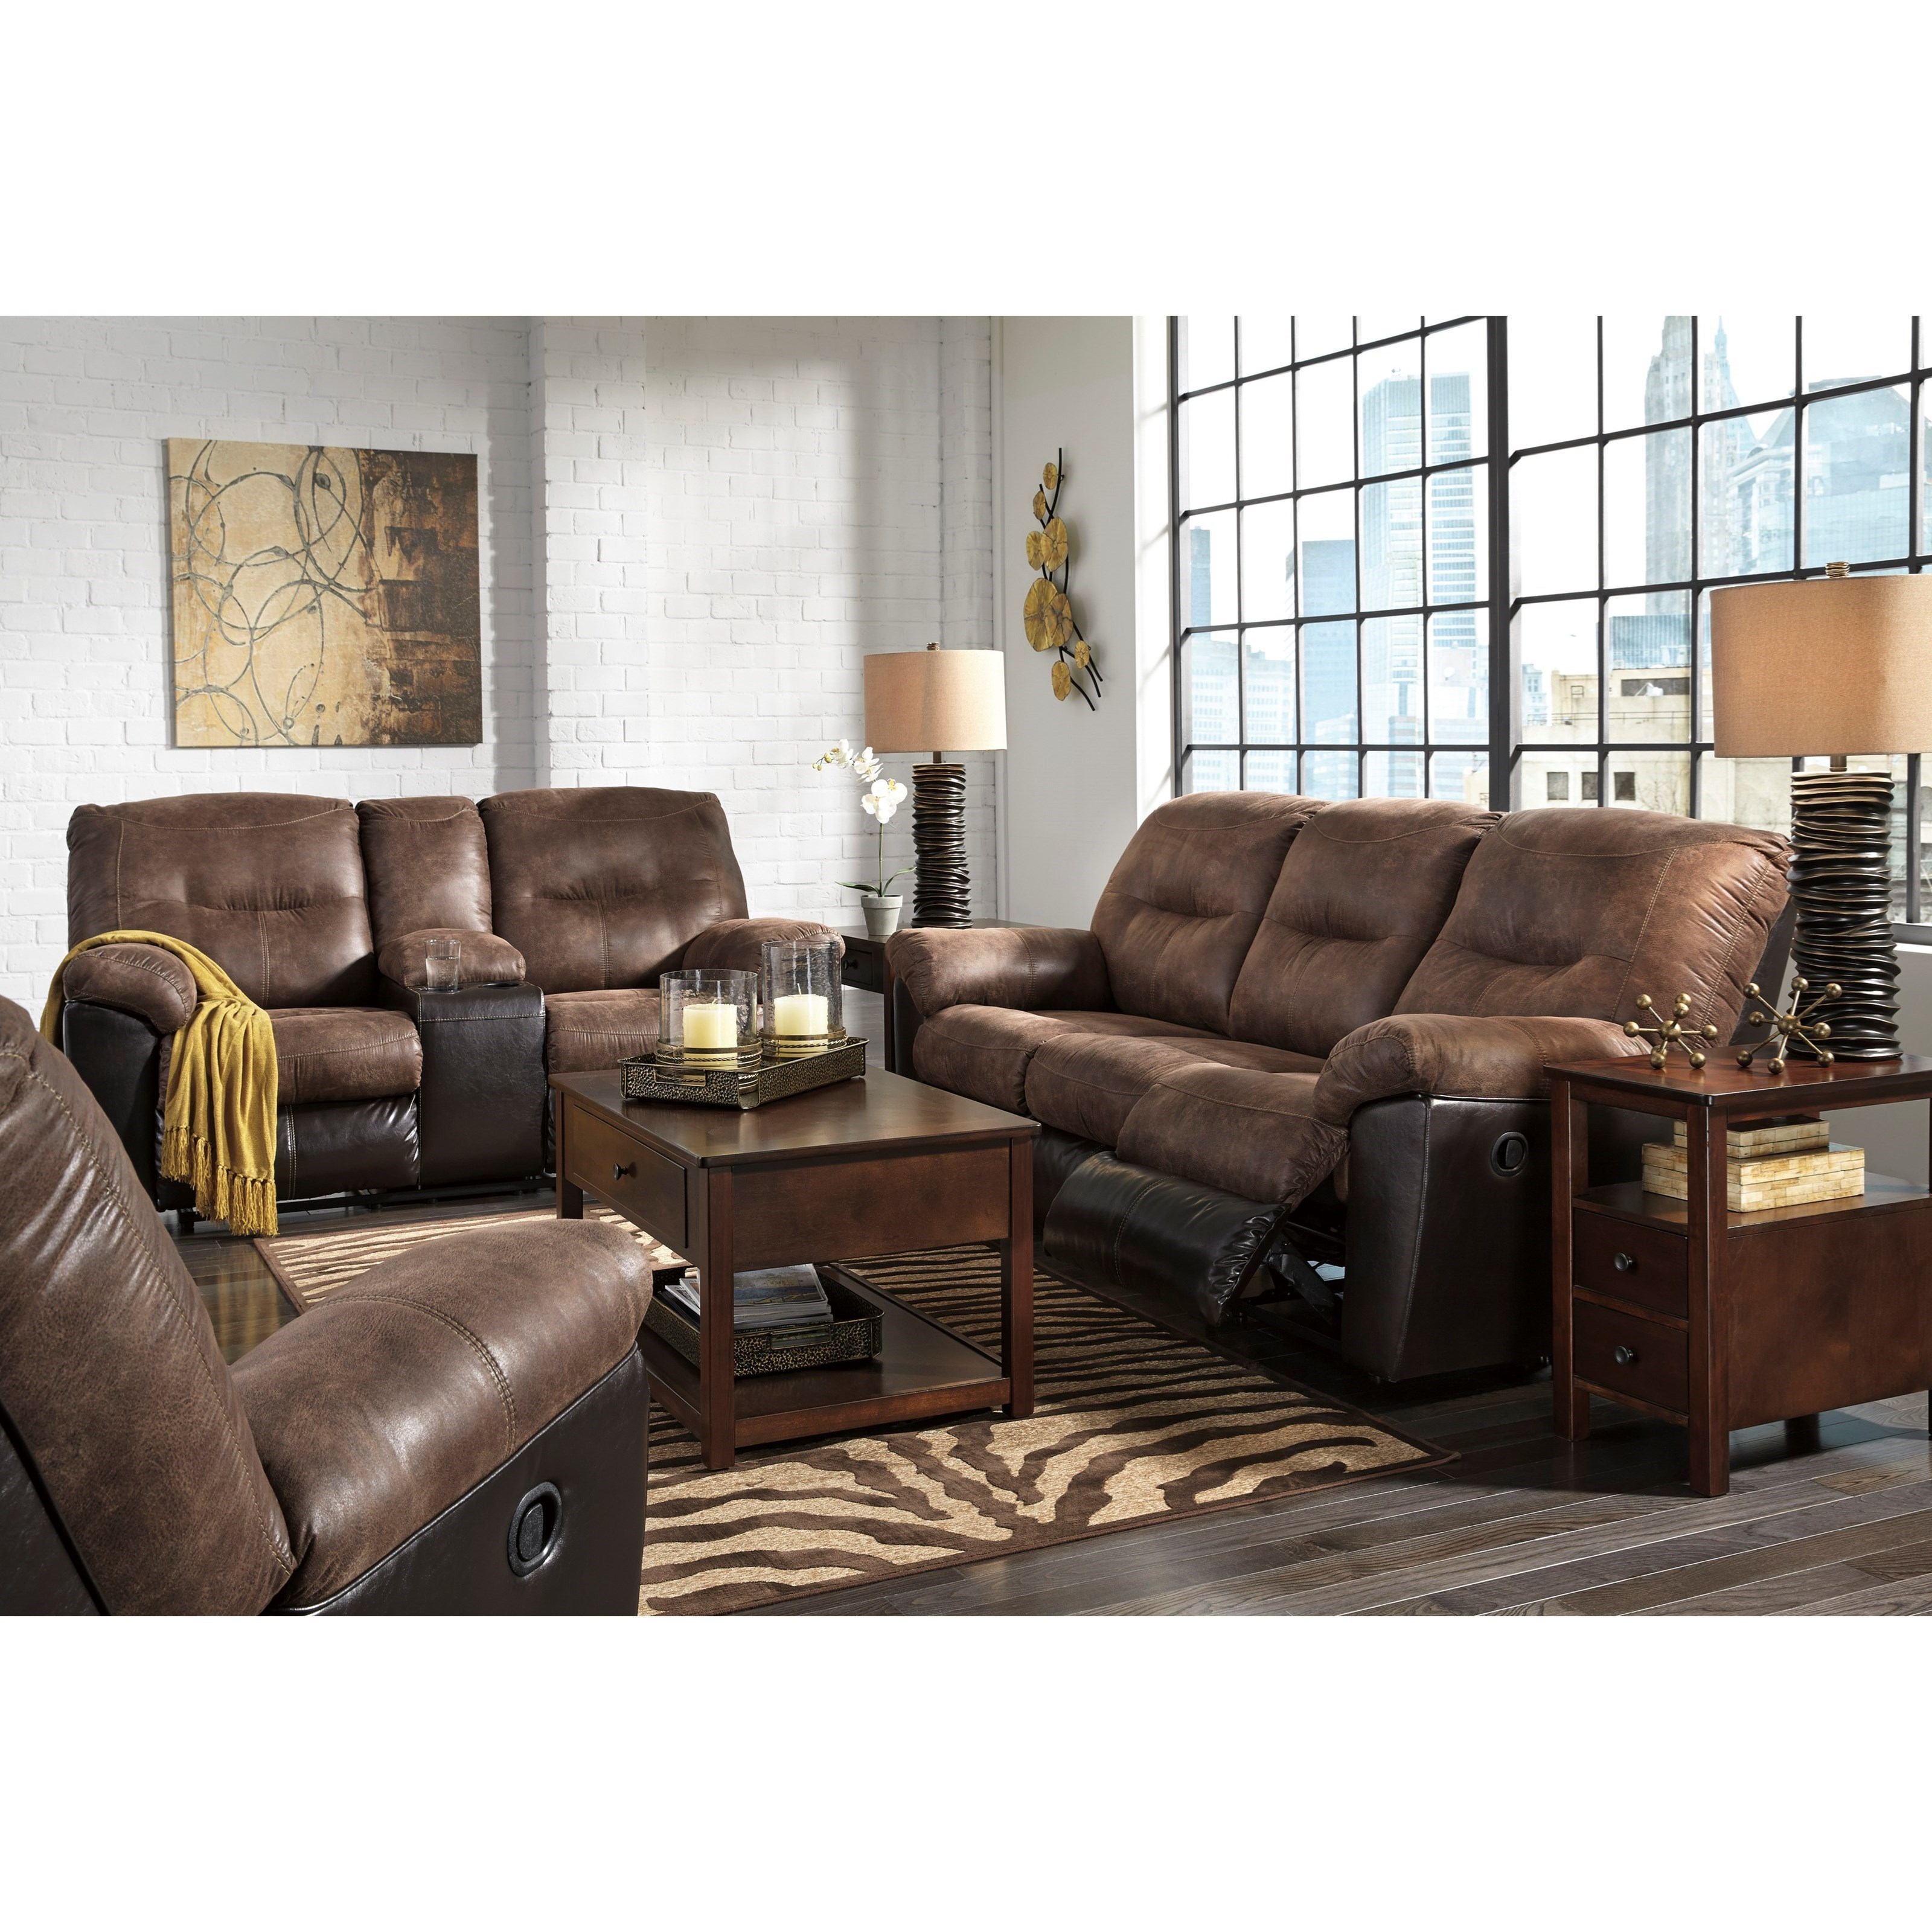 Signature Design By Ashley Follett Two Tone Faux Leather Reclining Sofa